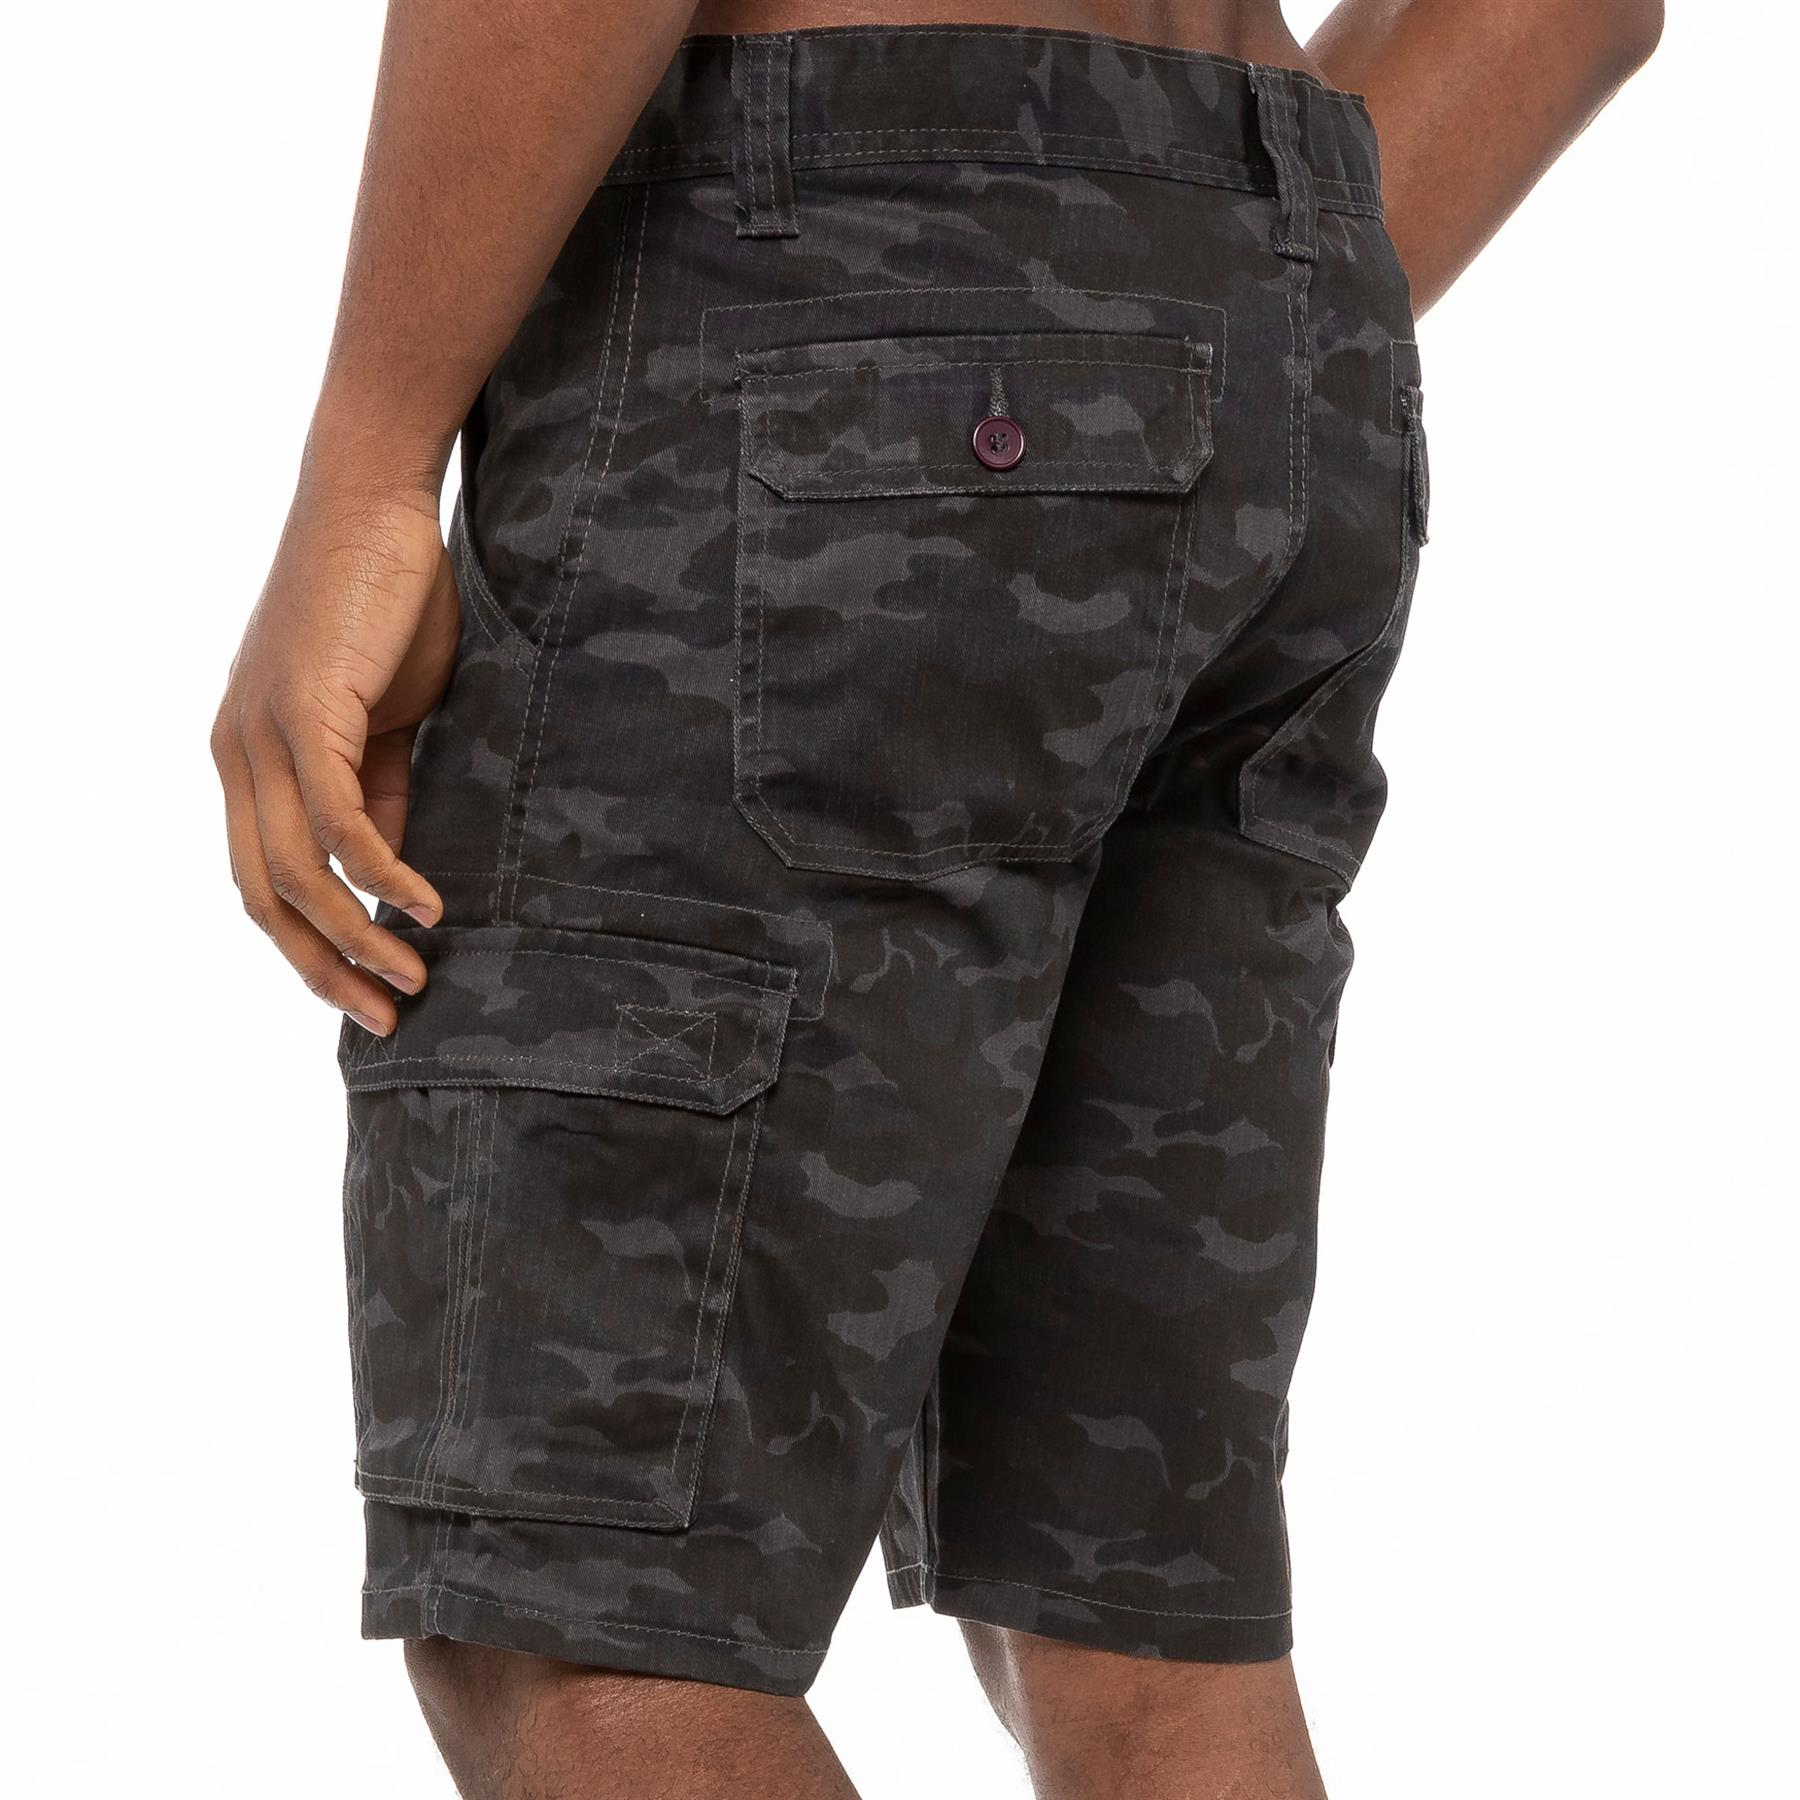 thumbnail 17 - Kruze Jeans Mens Army Combat Shorts Camouflage Cargo Casual Camo Work Half Pants